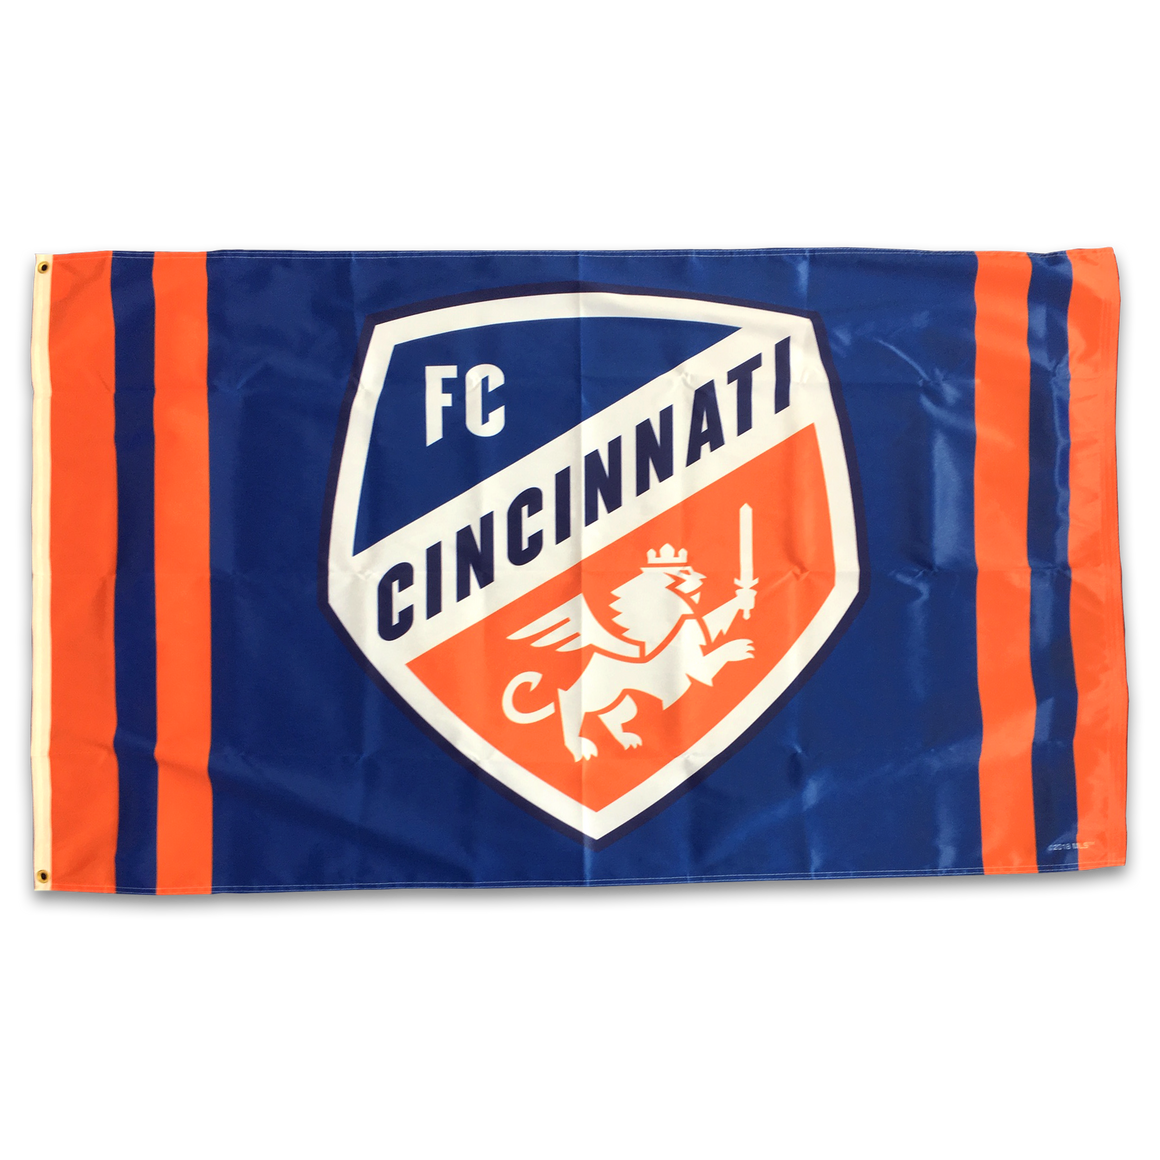 FC Cincinnati Primary Shield Flag - Cincy Shirts